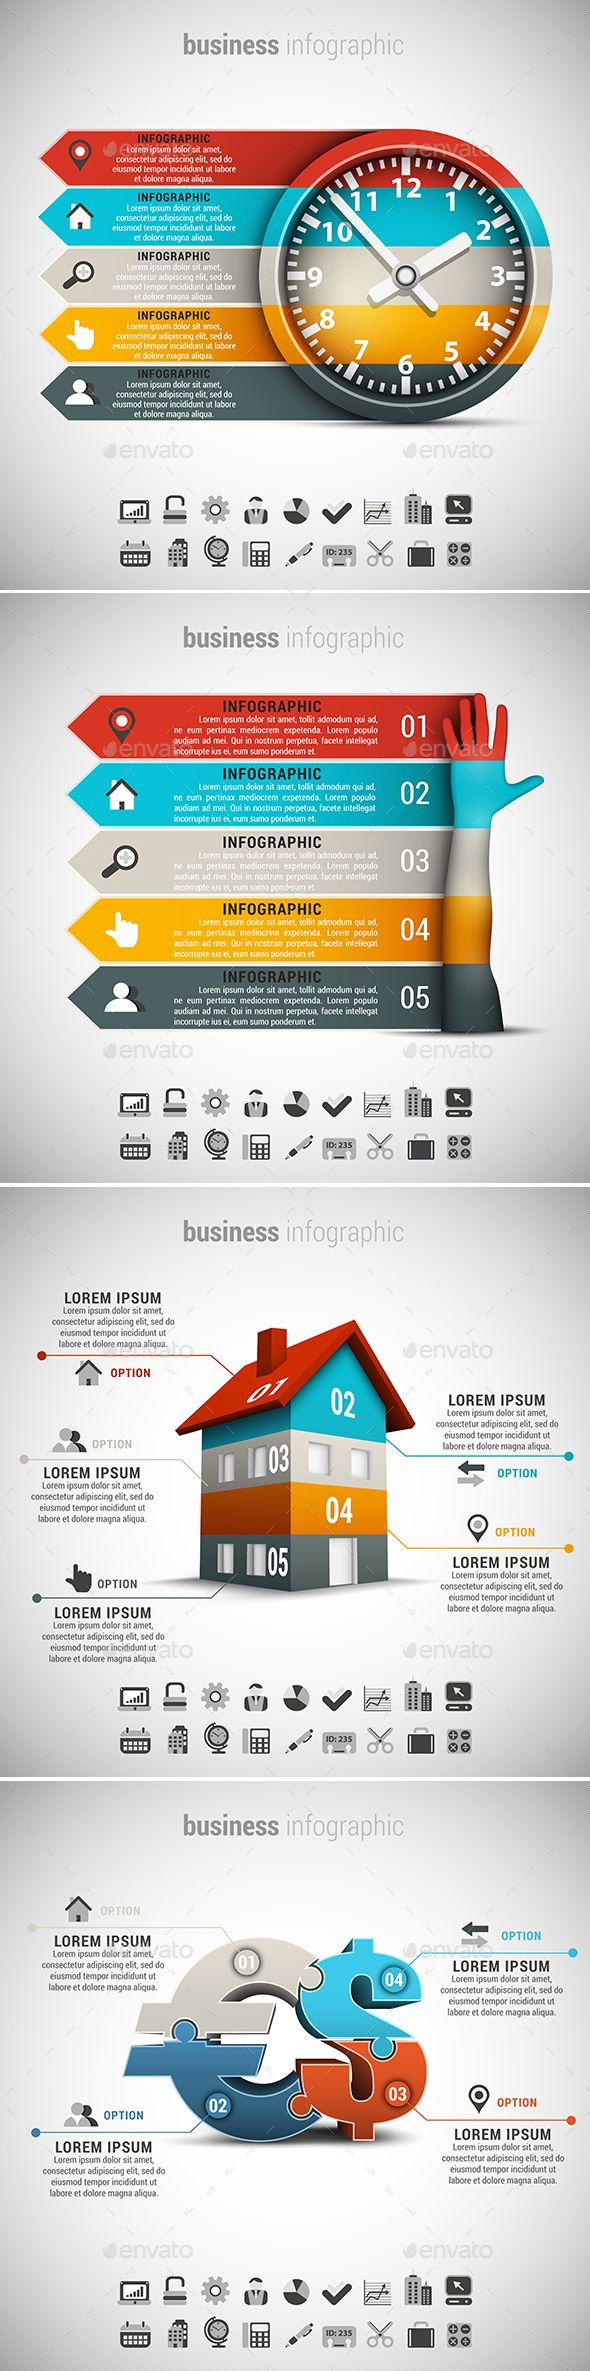 4 in 1 Business Infographics Template Bundle. Download here: http://graphicriver.net/item/4-in-1-business-infographics-bundle/15463546?ref=ksioks